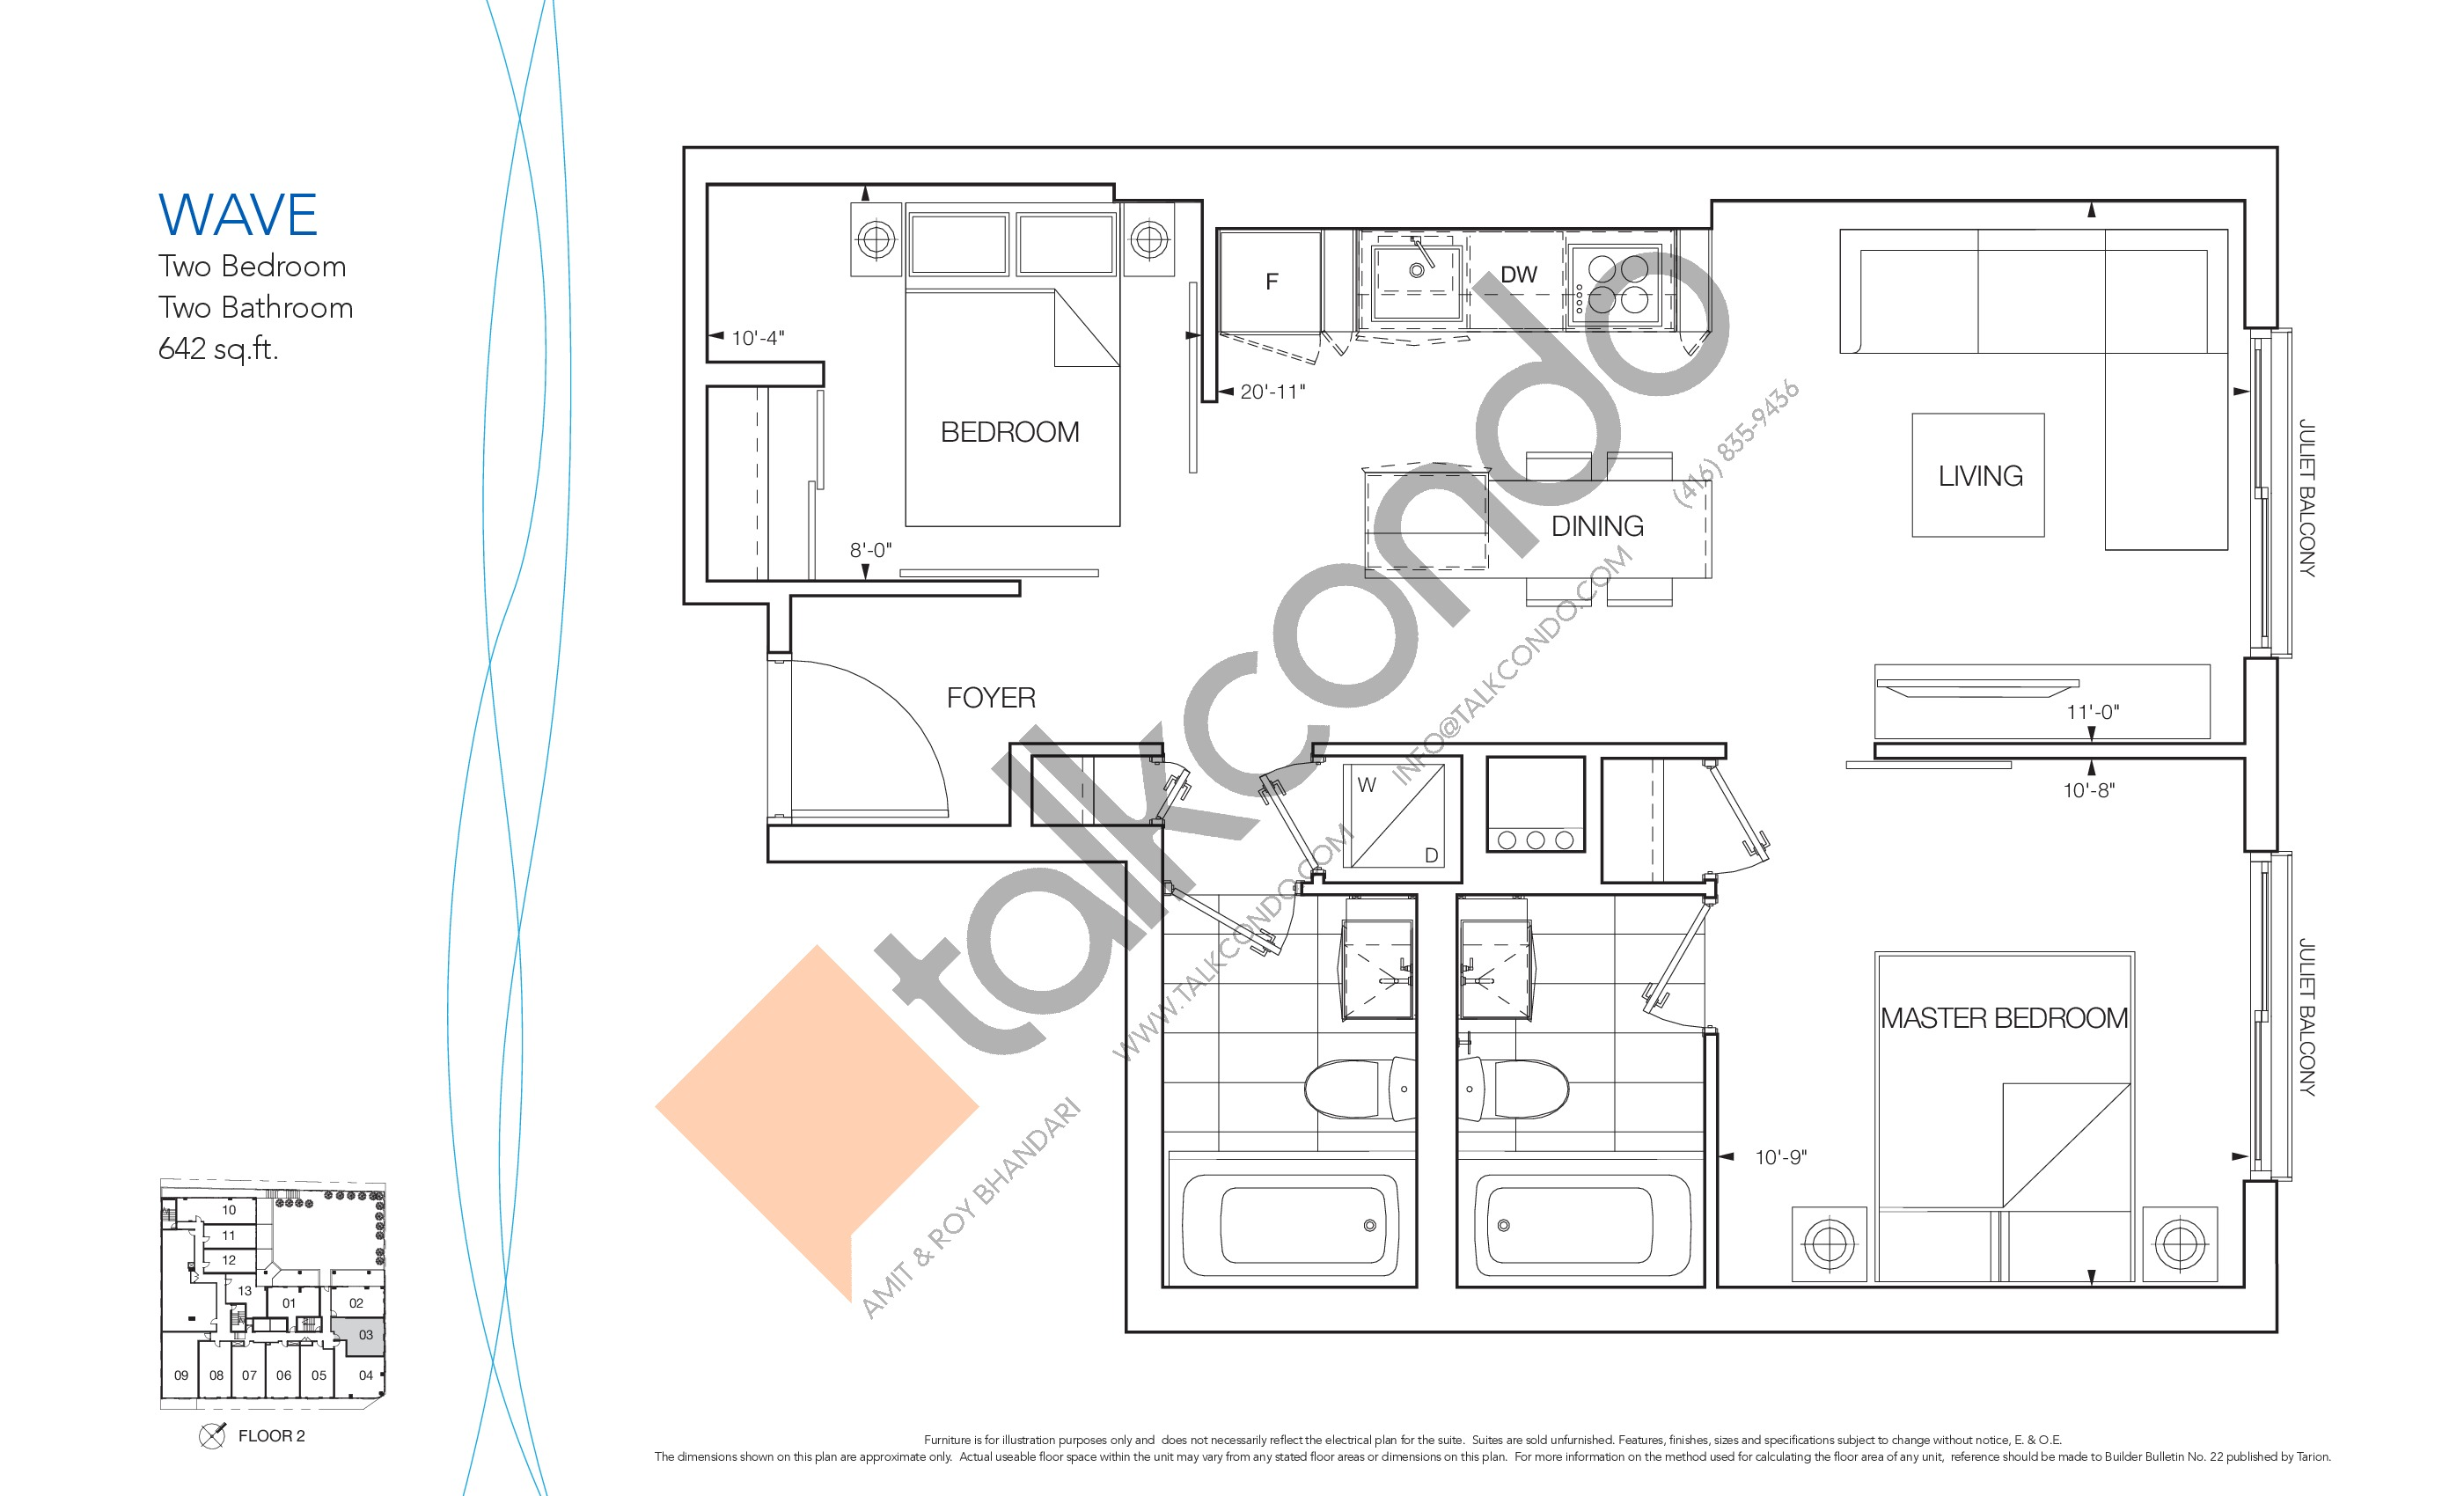 Wave Floor Plan at Nautique Lakefront Residences - 642 sq.ft